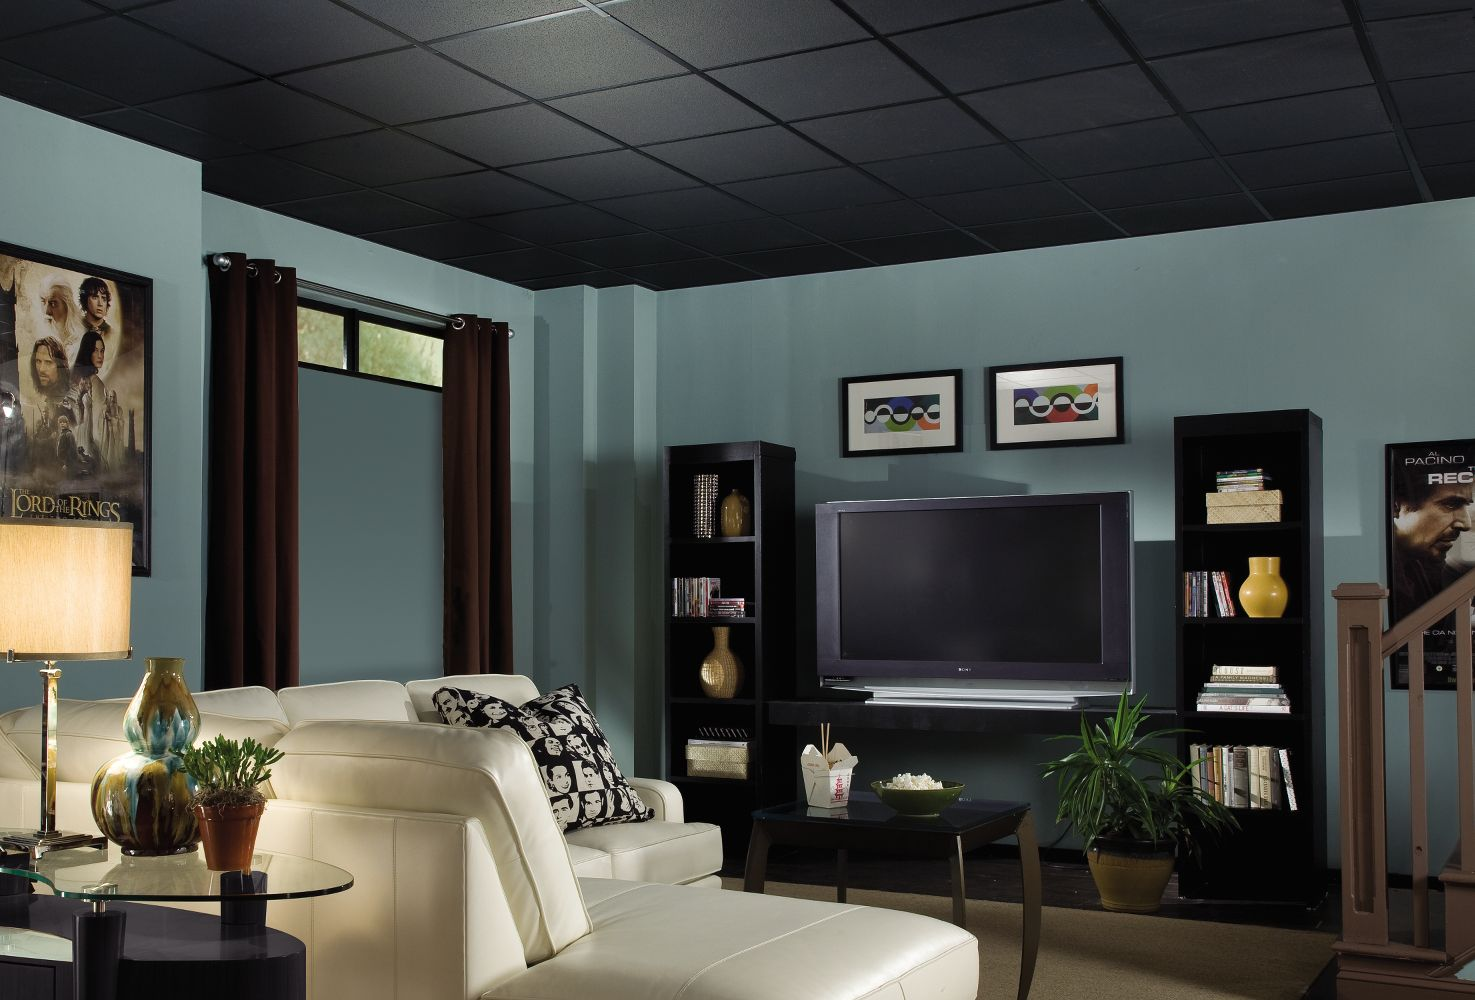 Fine Fissured Homestyle Ceilings Textured Black 2 X 2